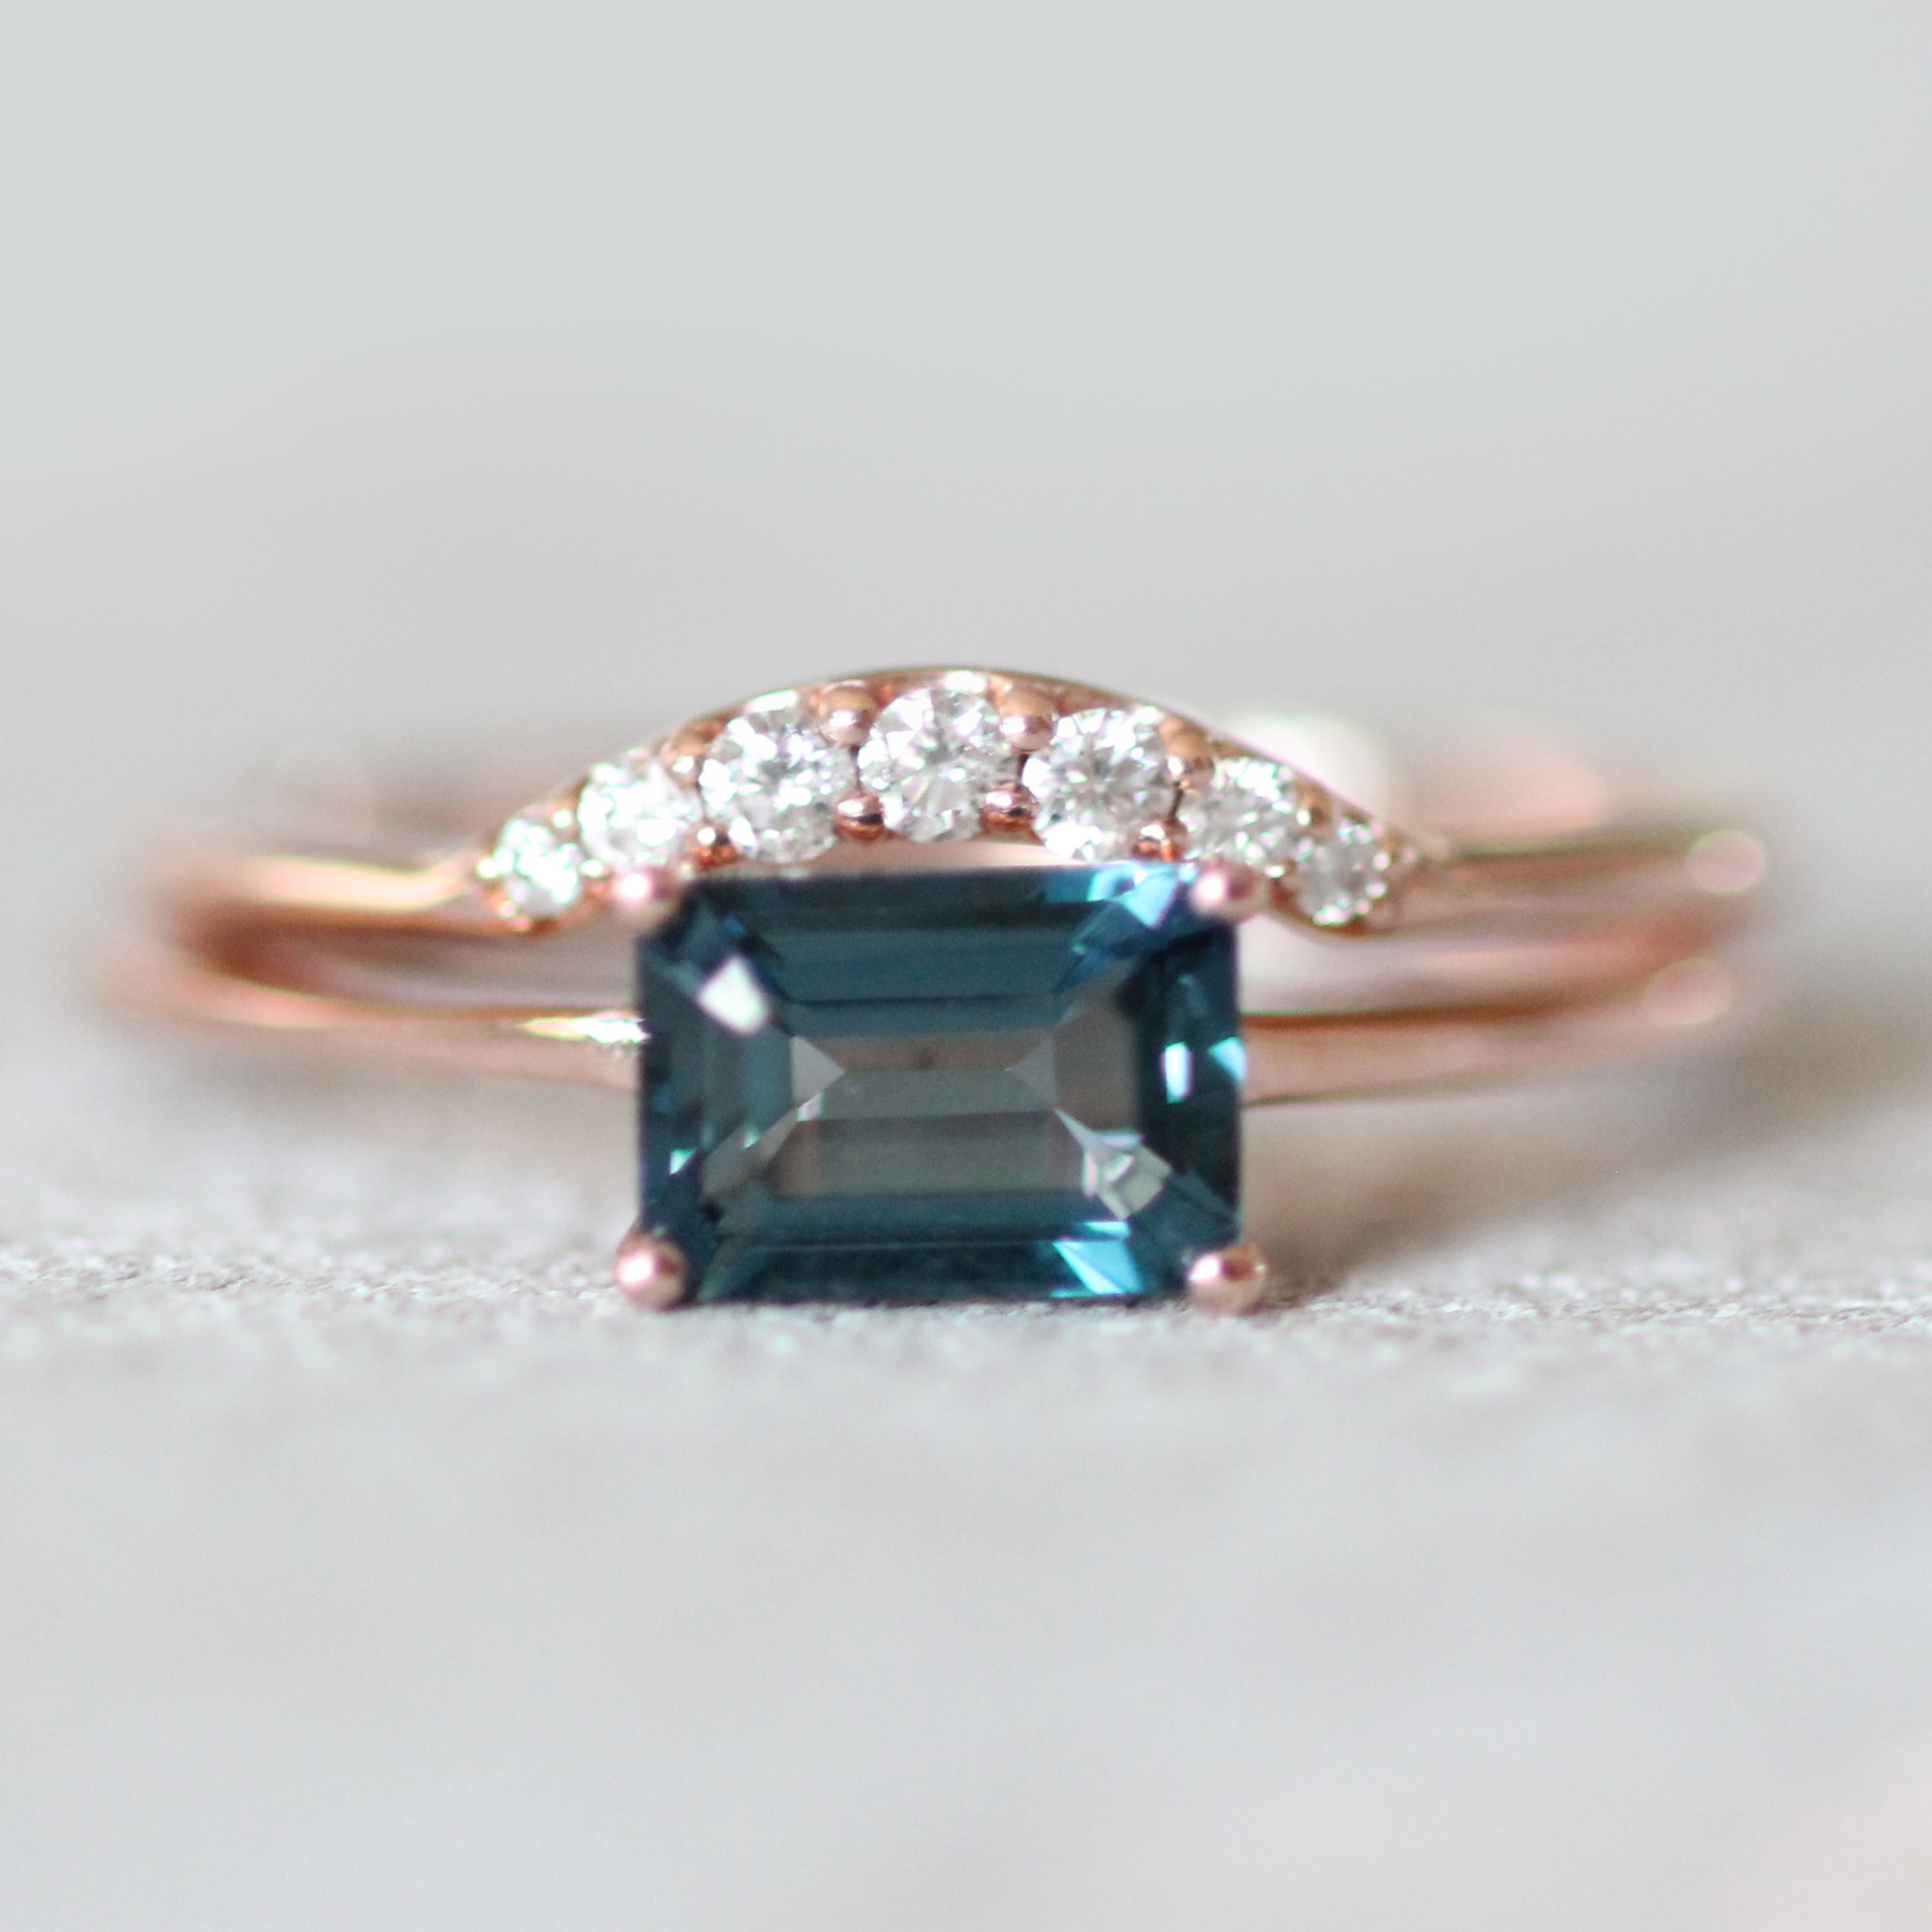 London Blue Topaz 1.3 carat Emerald Cut - Your choice of metal - Custom - Salt & Pepper Celestial Diamond Engagement Rings and Wedding Bands  by Midwinter Co.